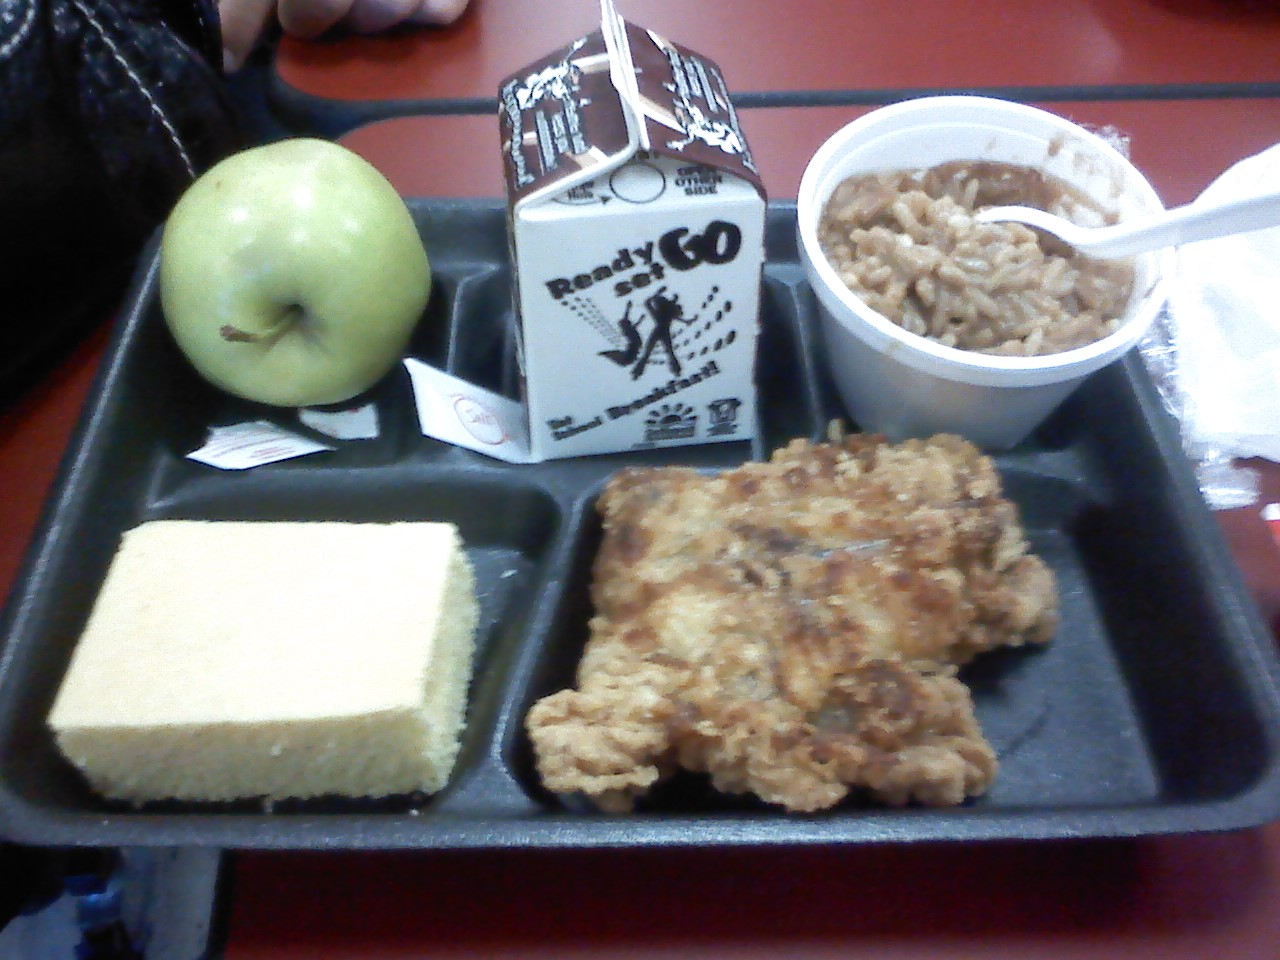 Us kids photos of their disgusting school lunch realitypod for Lunch food